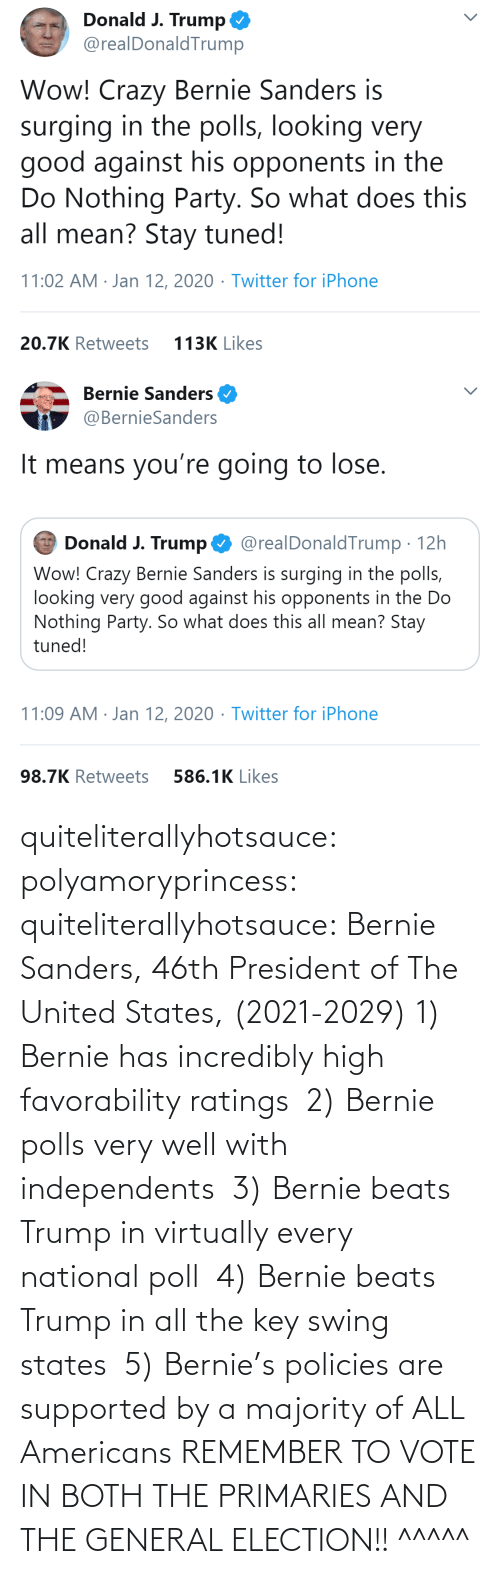 vote: quiteliterallyhotsauce:  polyamoryprincess:  quiteliterallyhotsauce:   Bernie Sanders, 46th President of The United States, (2021-2029)    1) Bernie has incredibly high favorability ratings  2) Bernie polls very well with independents  3) Bernie beats Trump in virtually every national poll  4) Bernie beats Trump in all the key swing states  5) Bernie's policies are supported by a majority of ALL Americans    REMEMBER TO VOTE IN BOTH THE PRIMARIES AND THE GENERAL ELECTION!!  ^^^^^